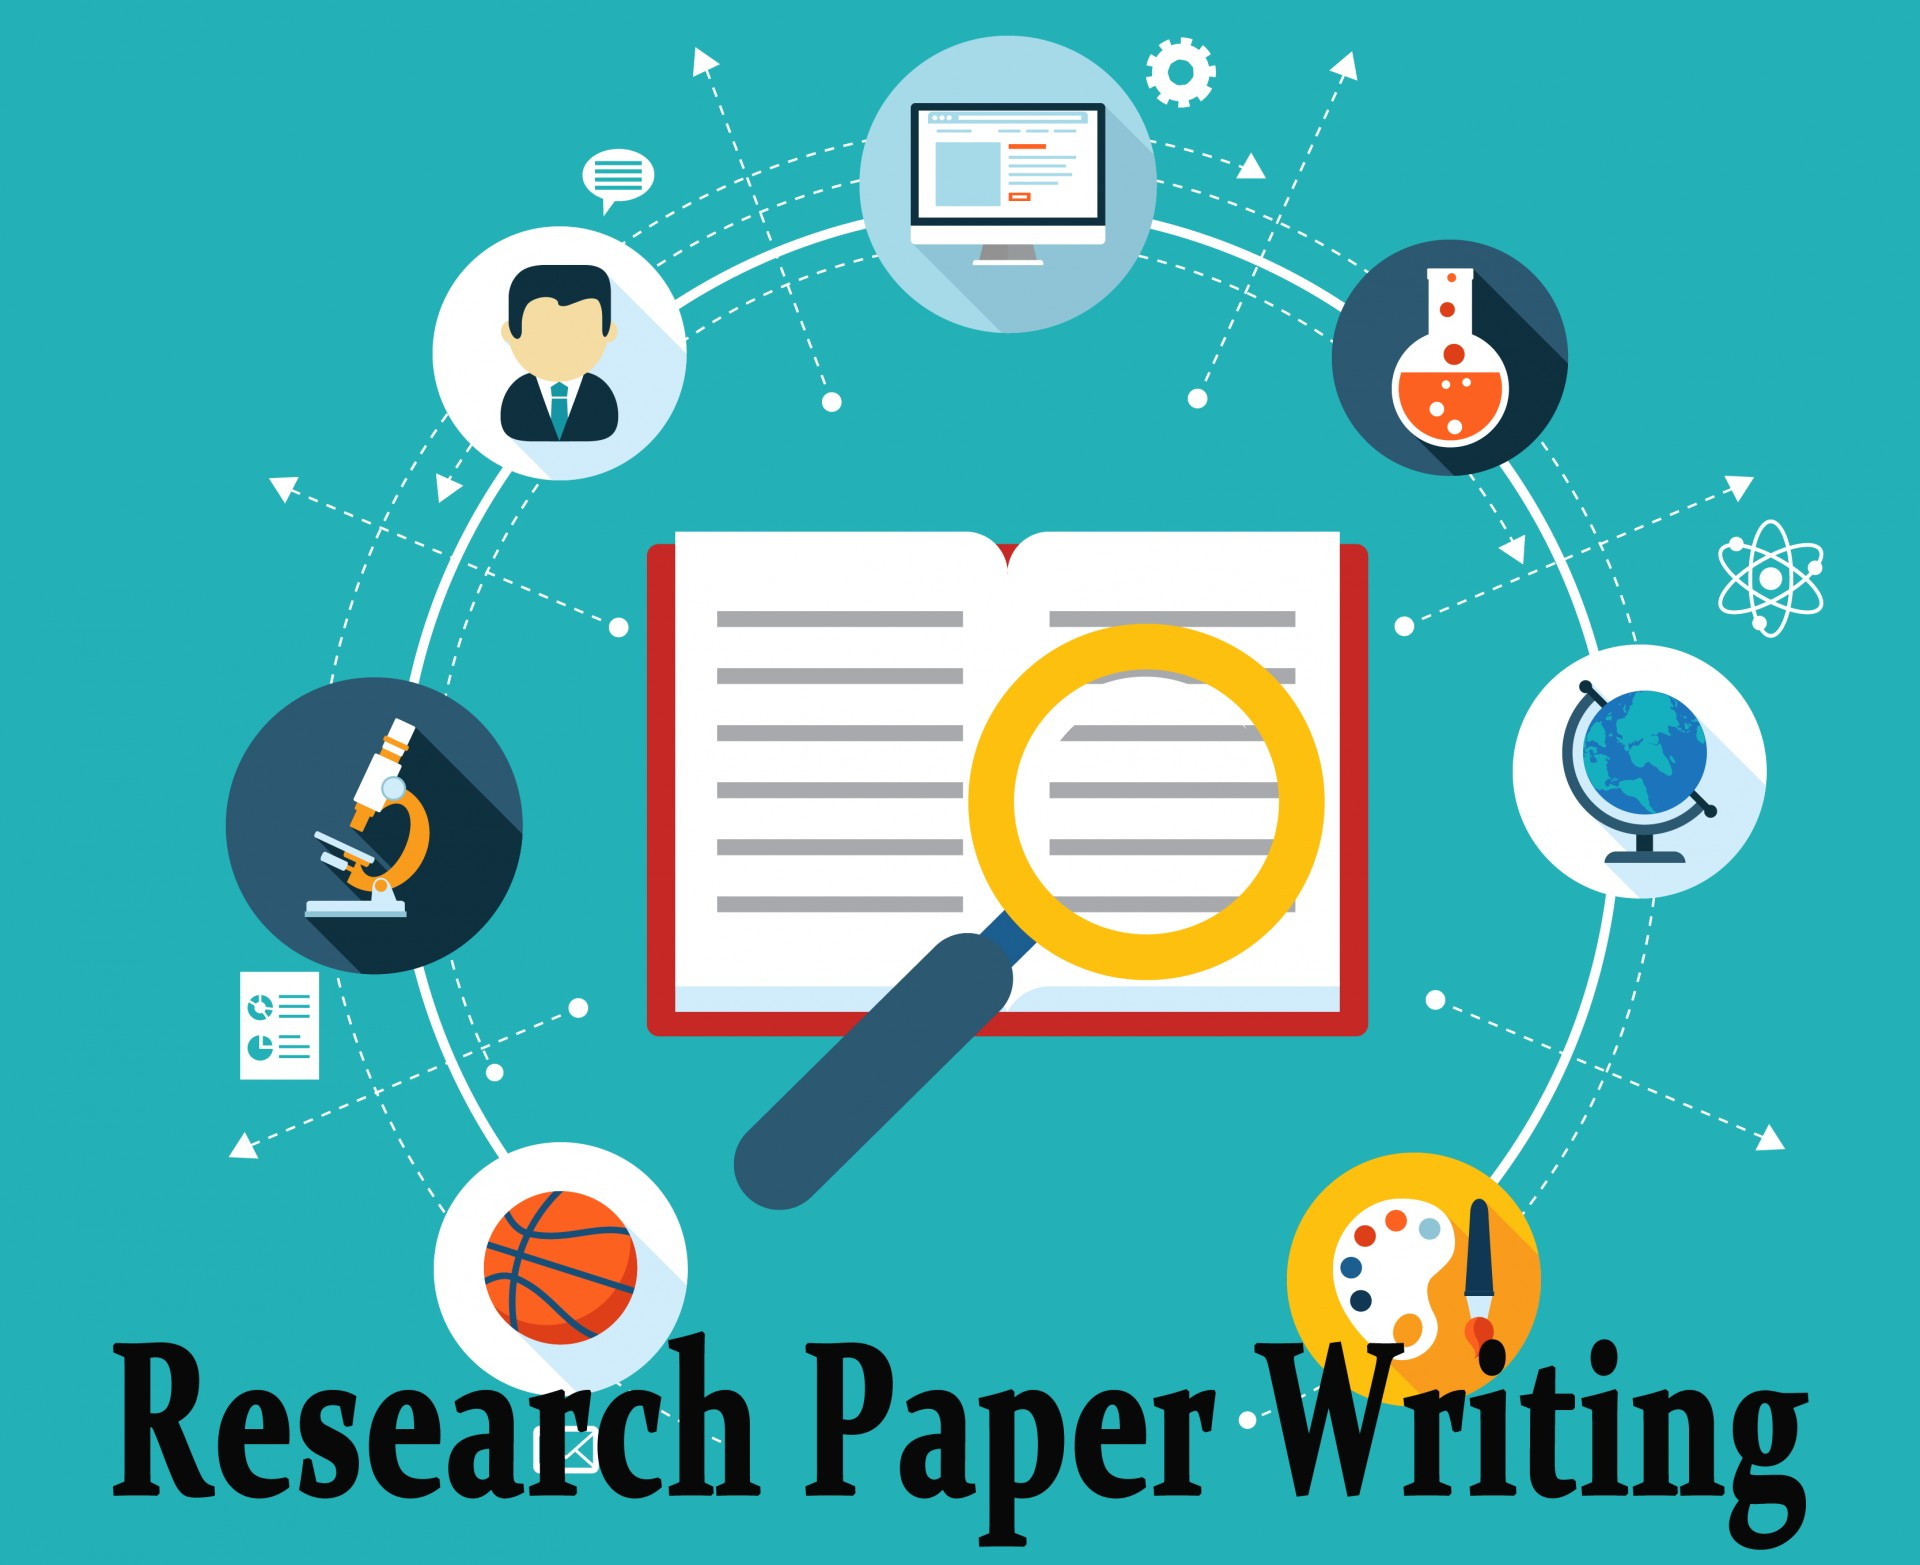 009 Writing The Research Paper 503 Effective Phenomenal Scientific Pdf Abstract Ppt Book 1920